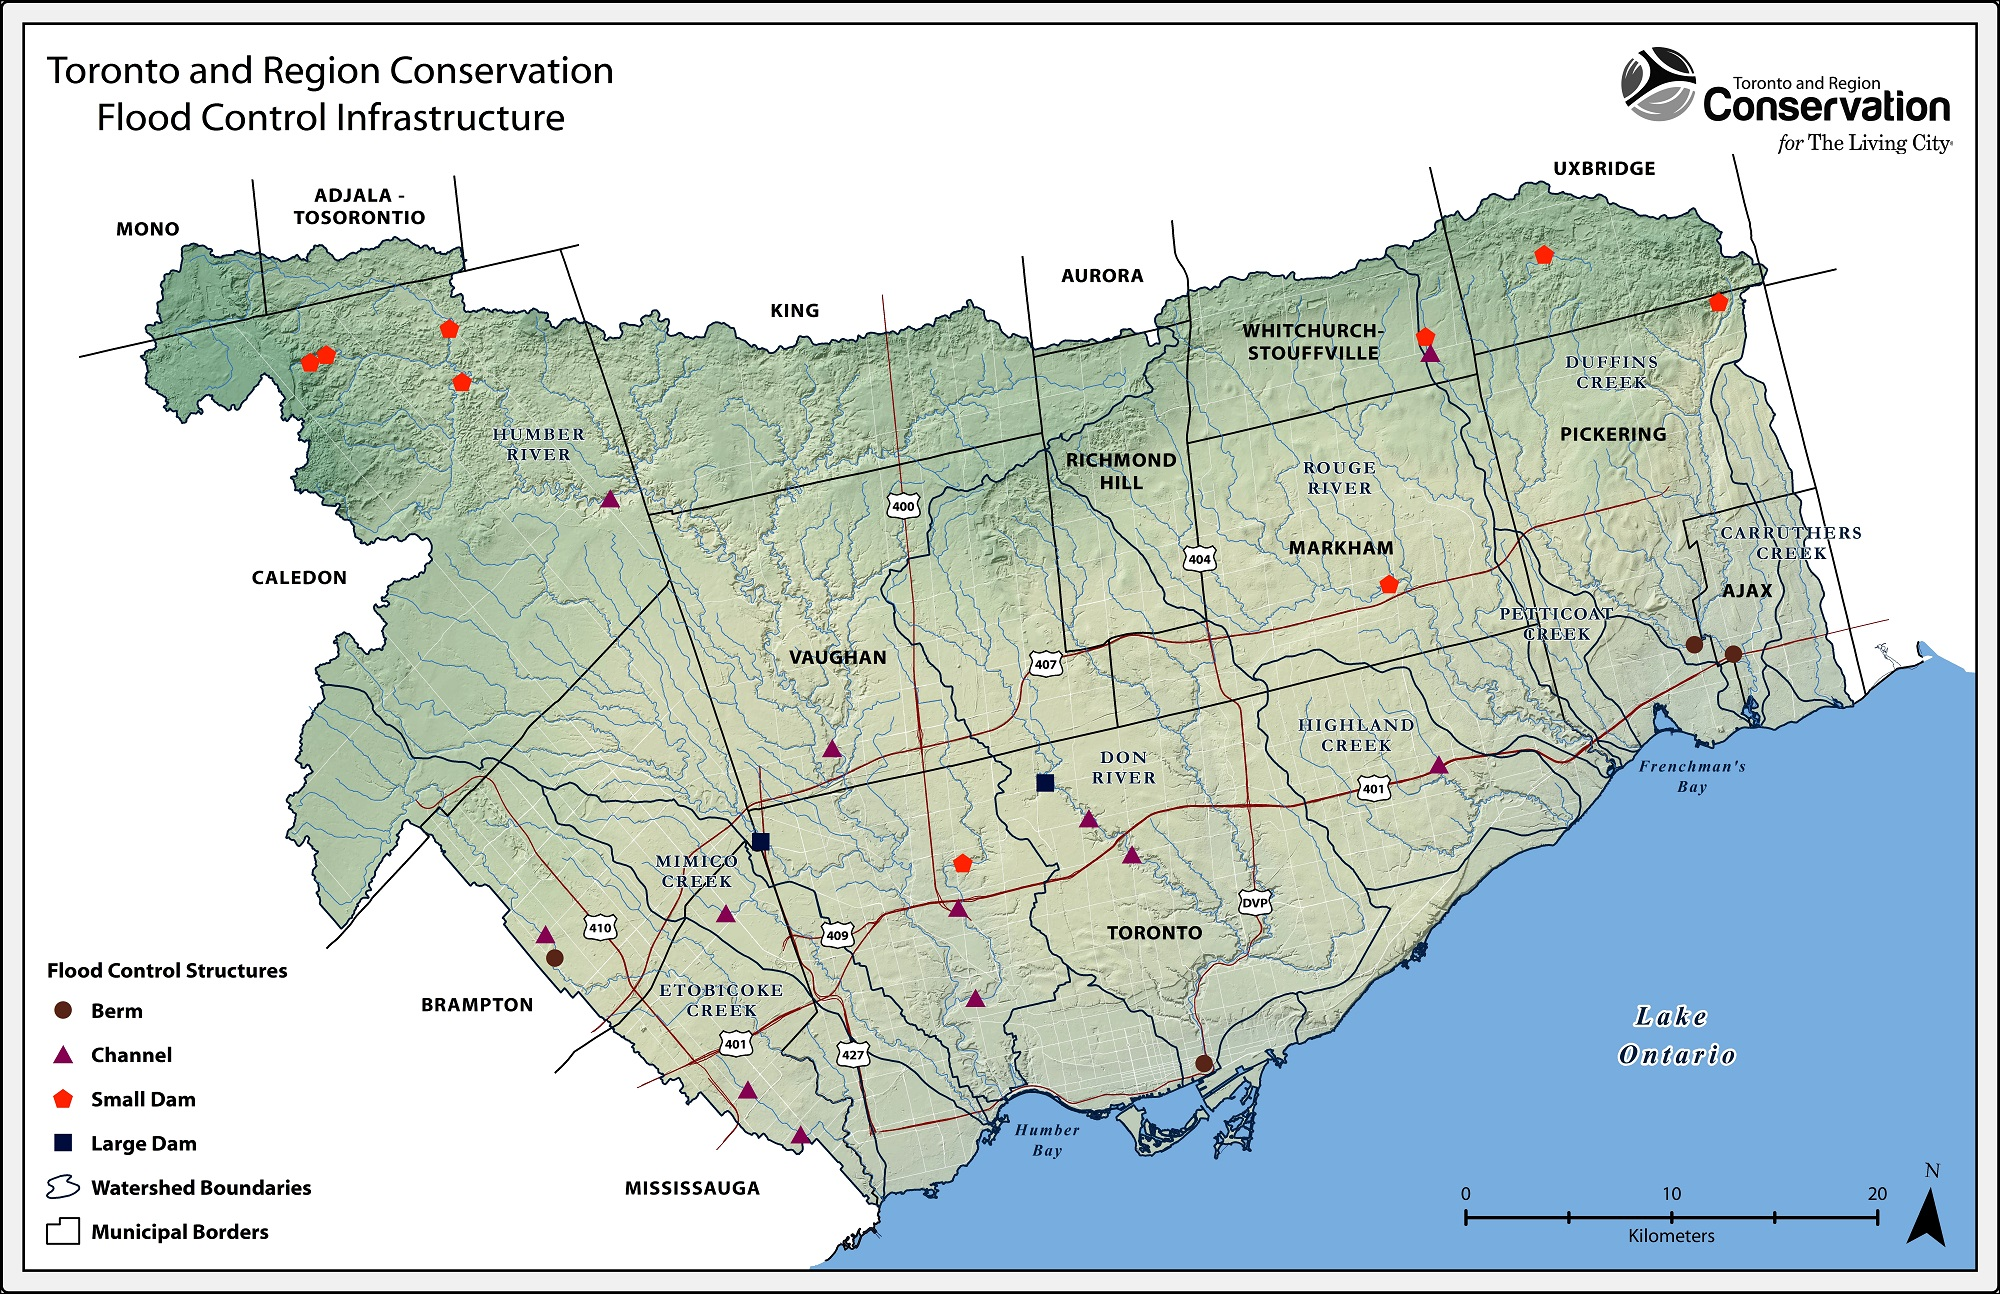 TRCA Flood Control structures map